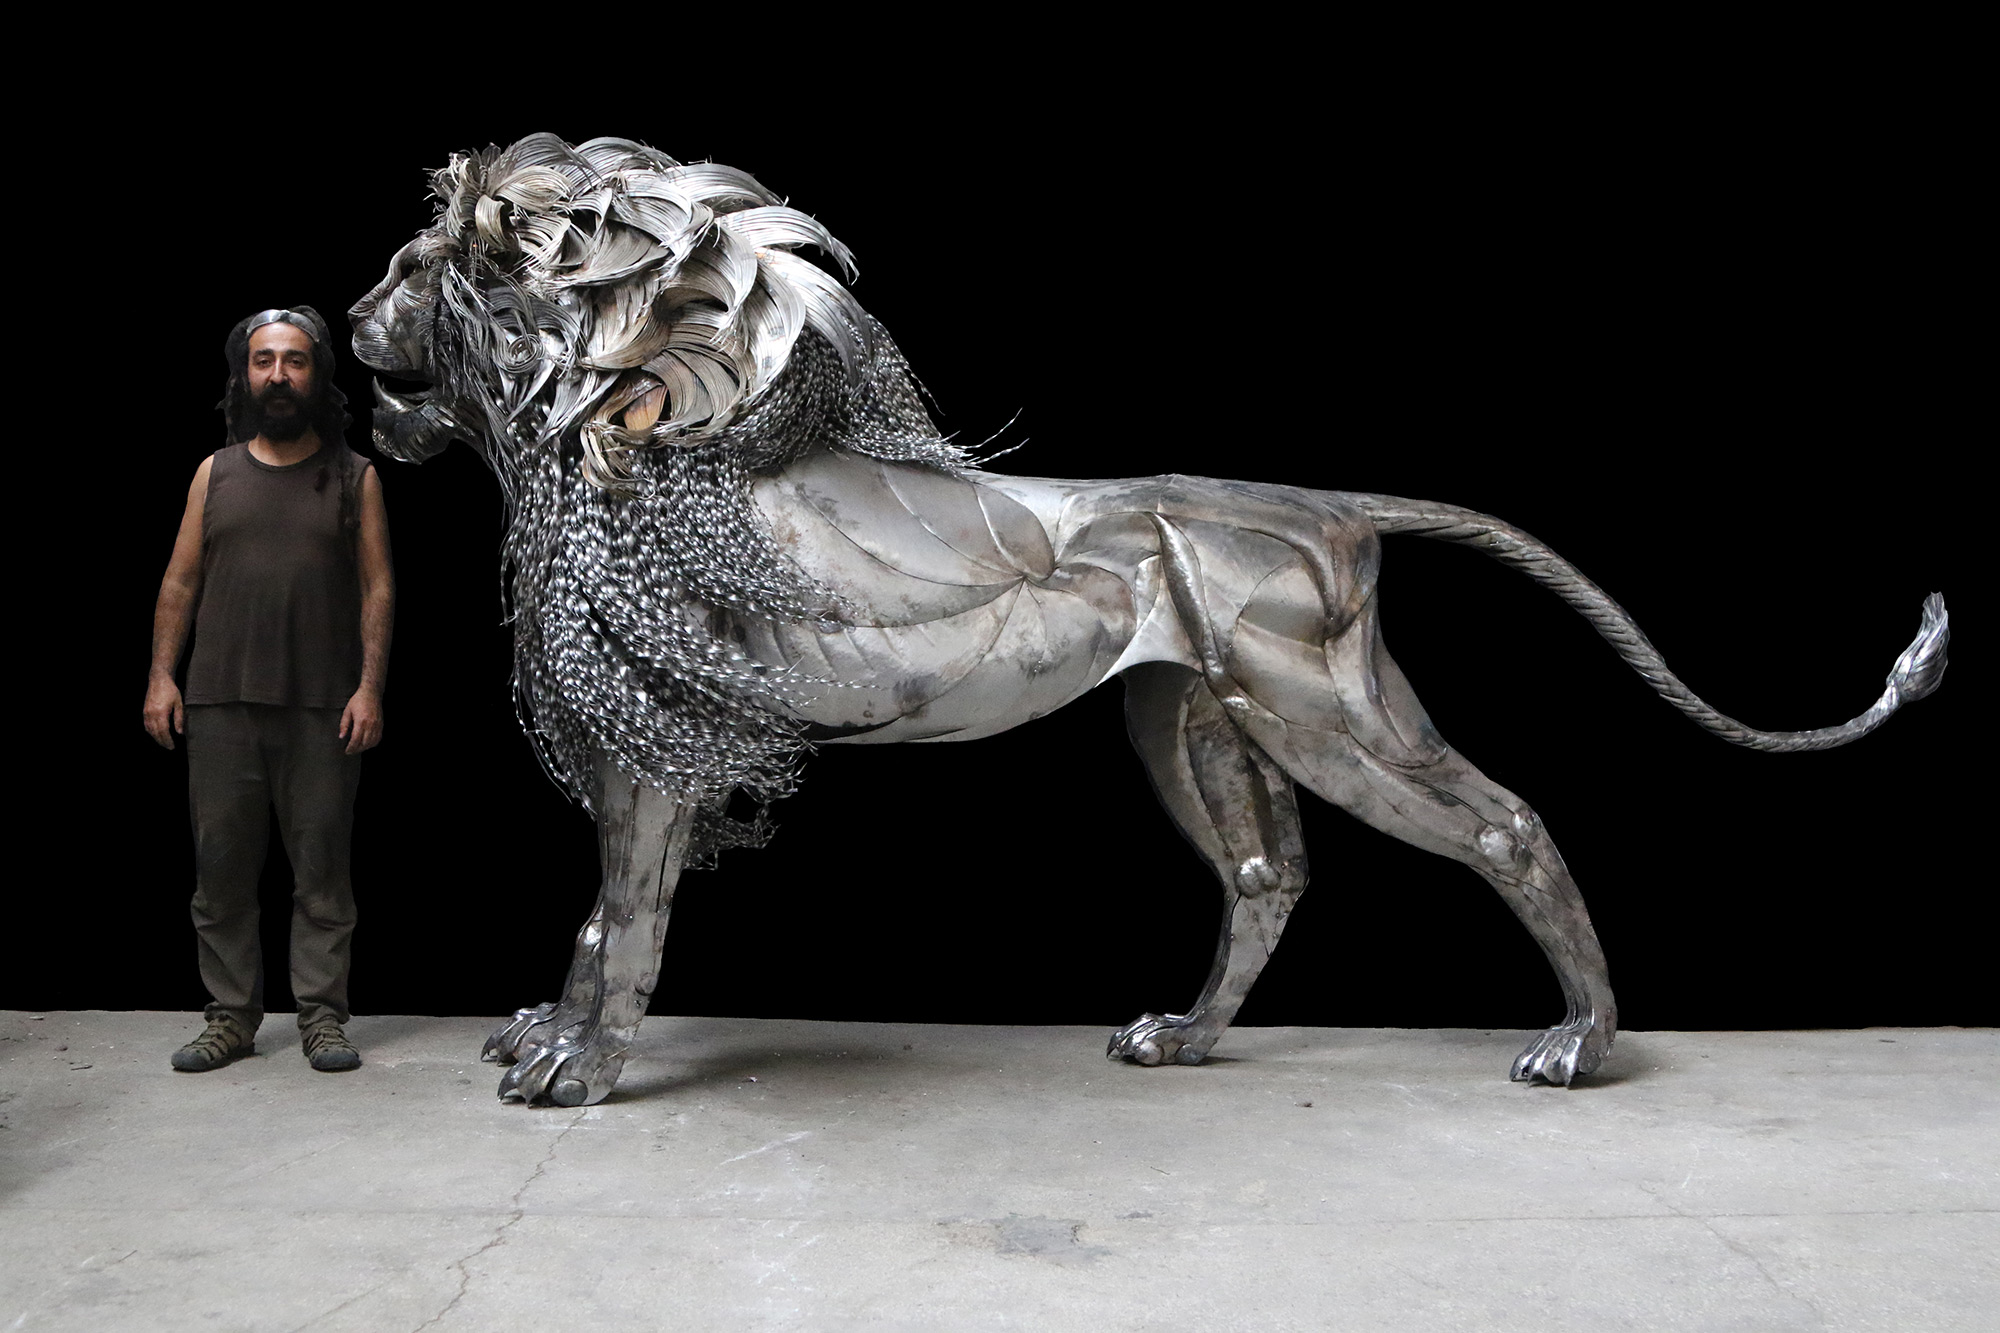 A Towering Hammered Steel Lion by Selcuk Y?lmaz